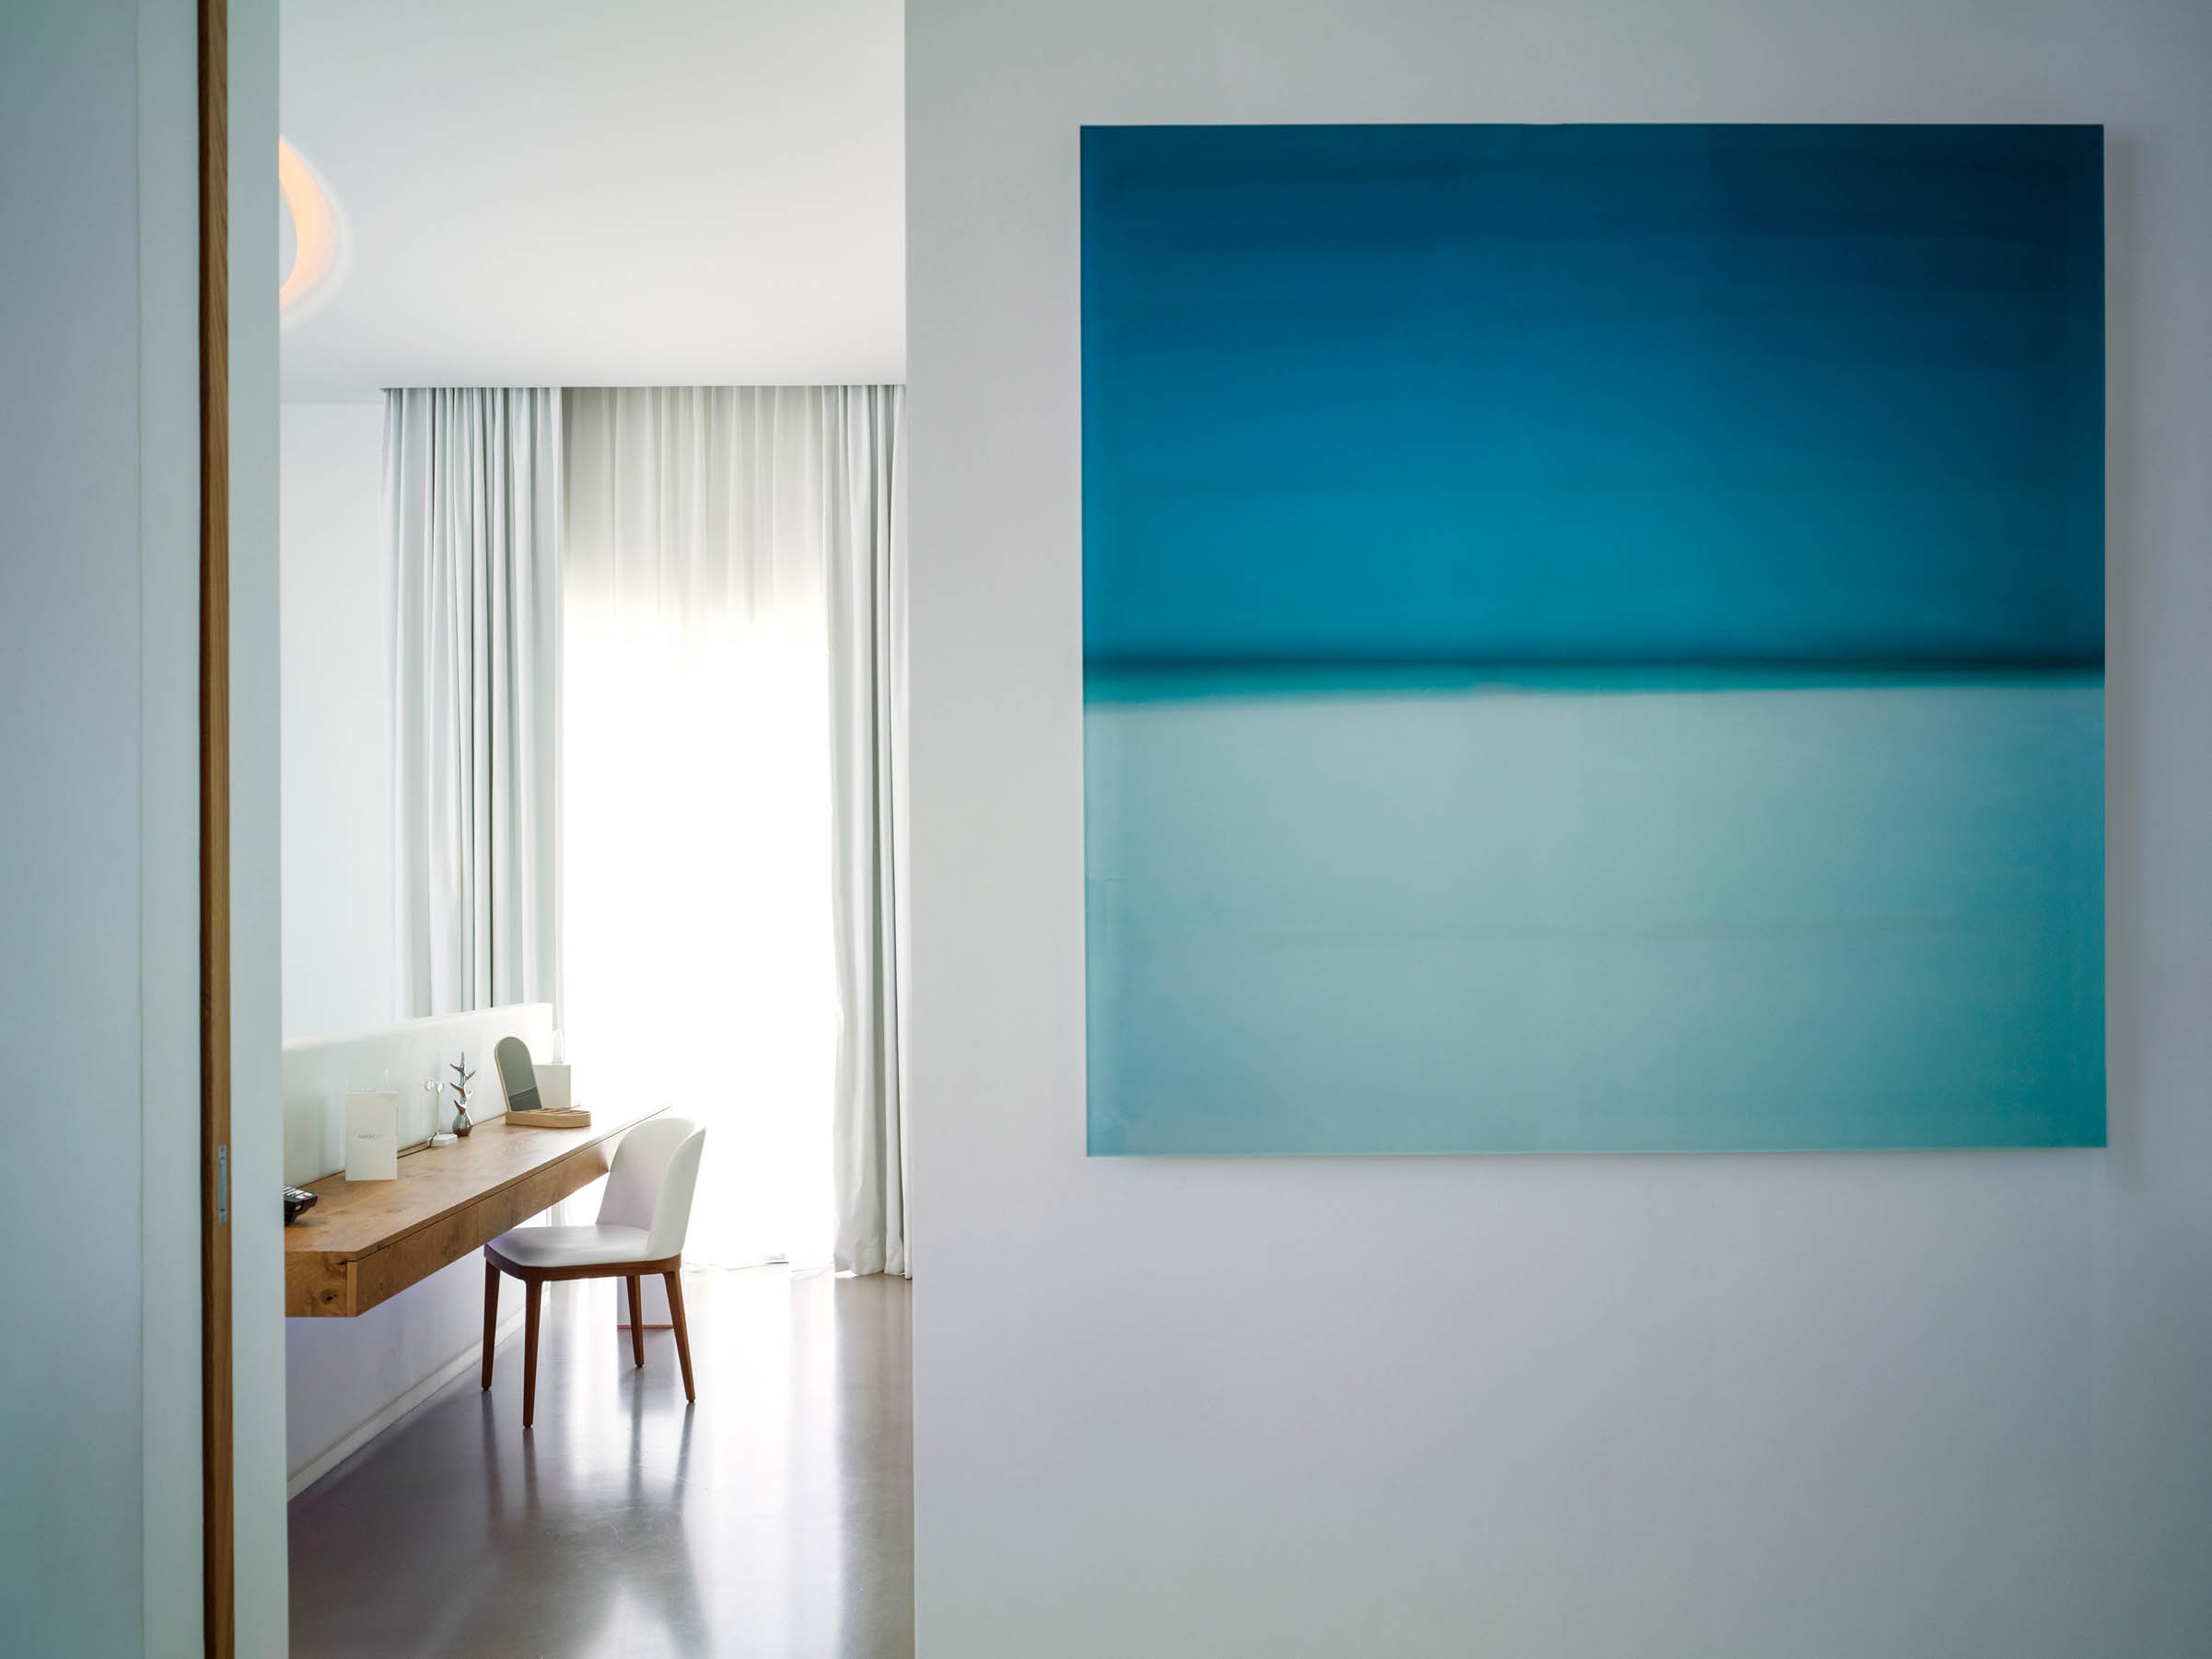 08-capsule-arts-projects-nikki-beach-room-painting.jpg